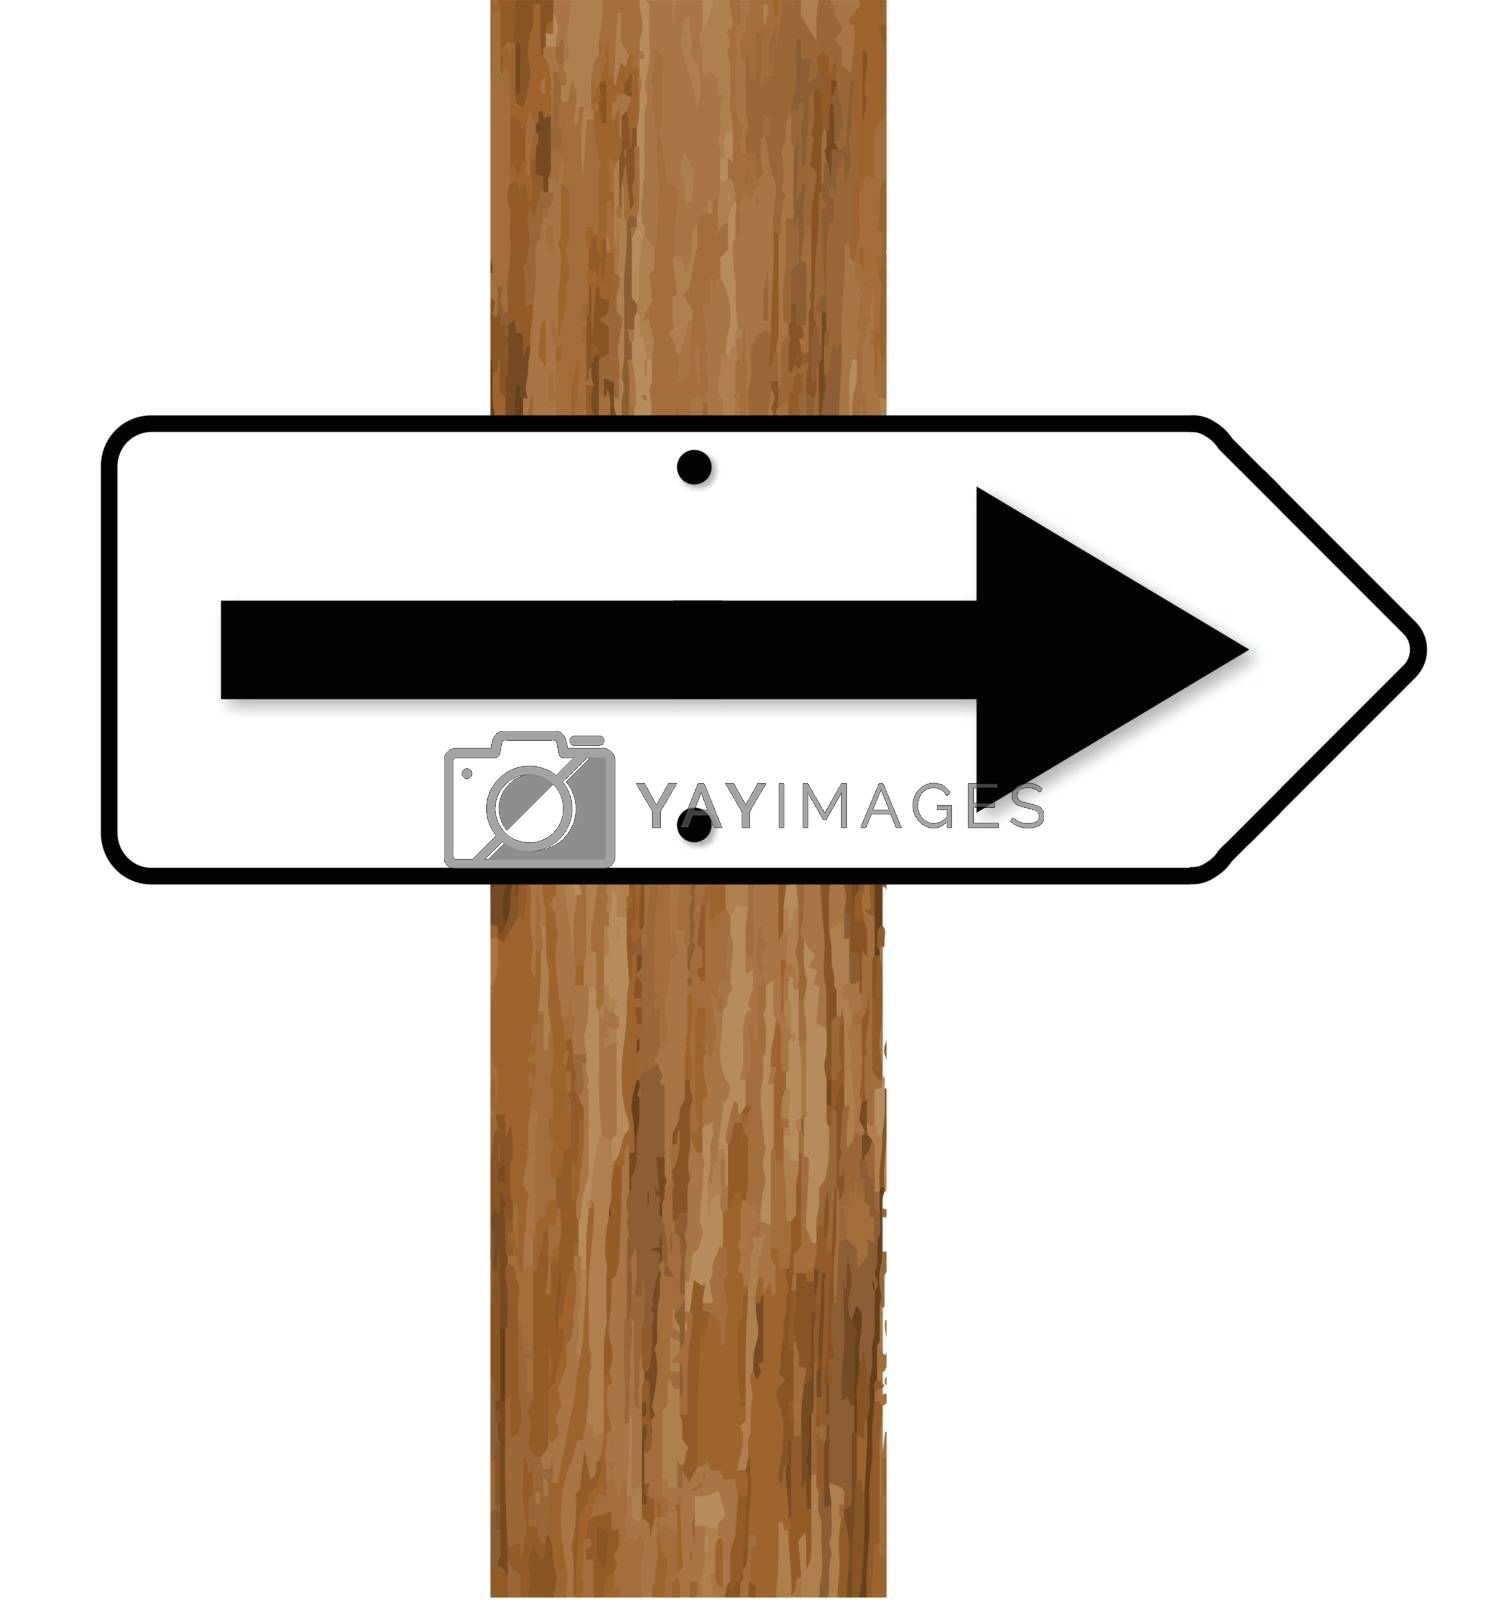 A white and black traffic arrow fixed to a wooden pole over a white background